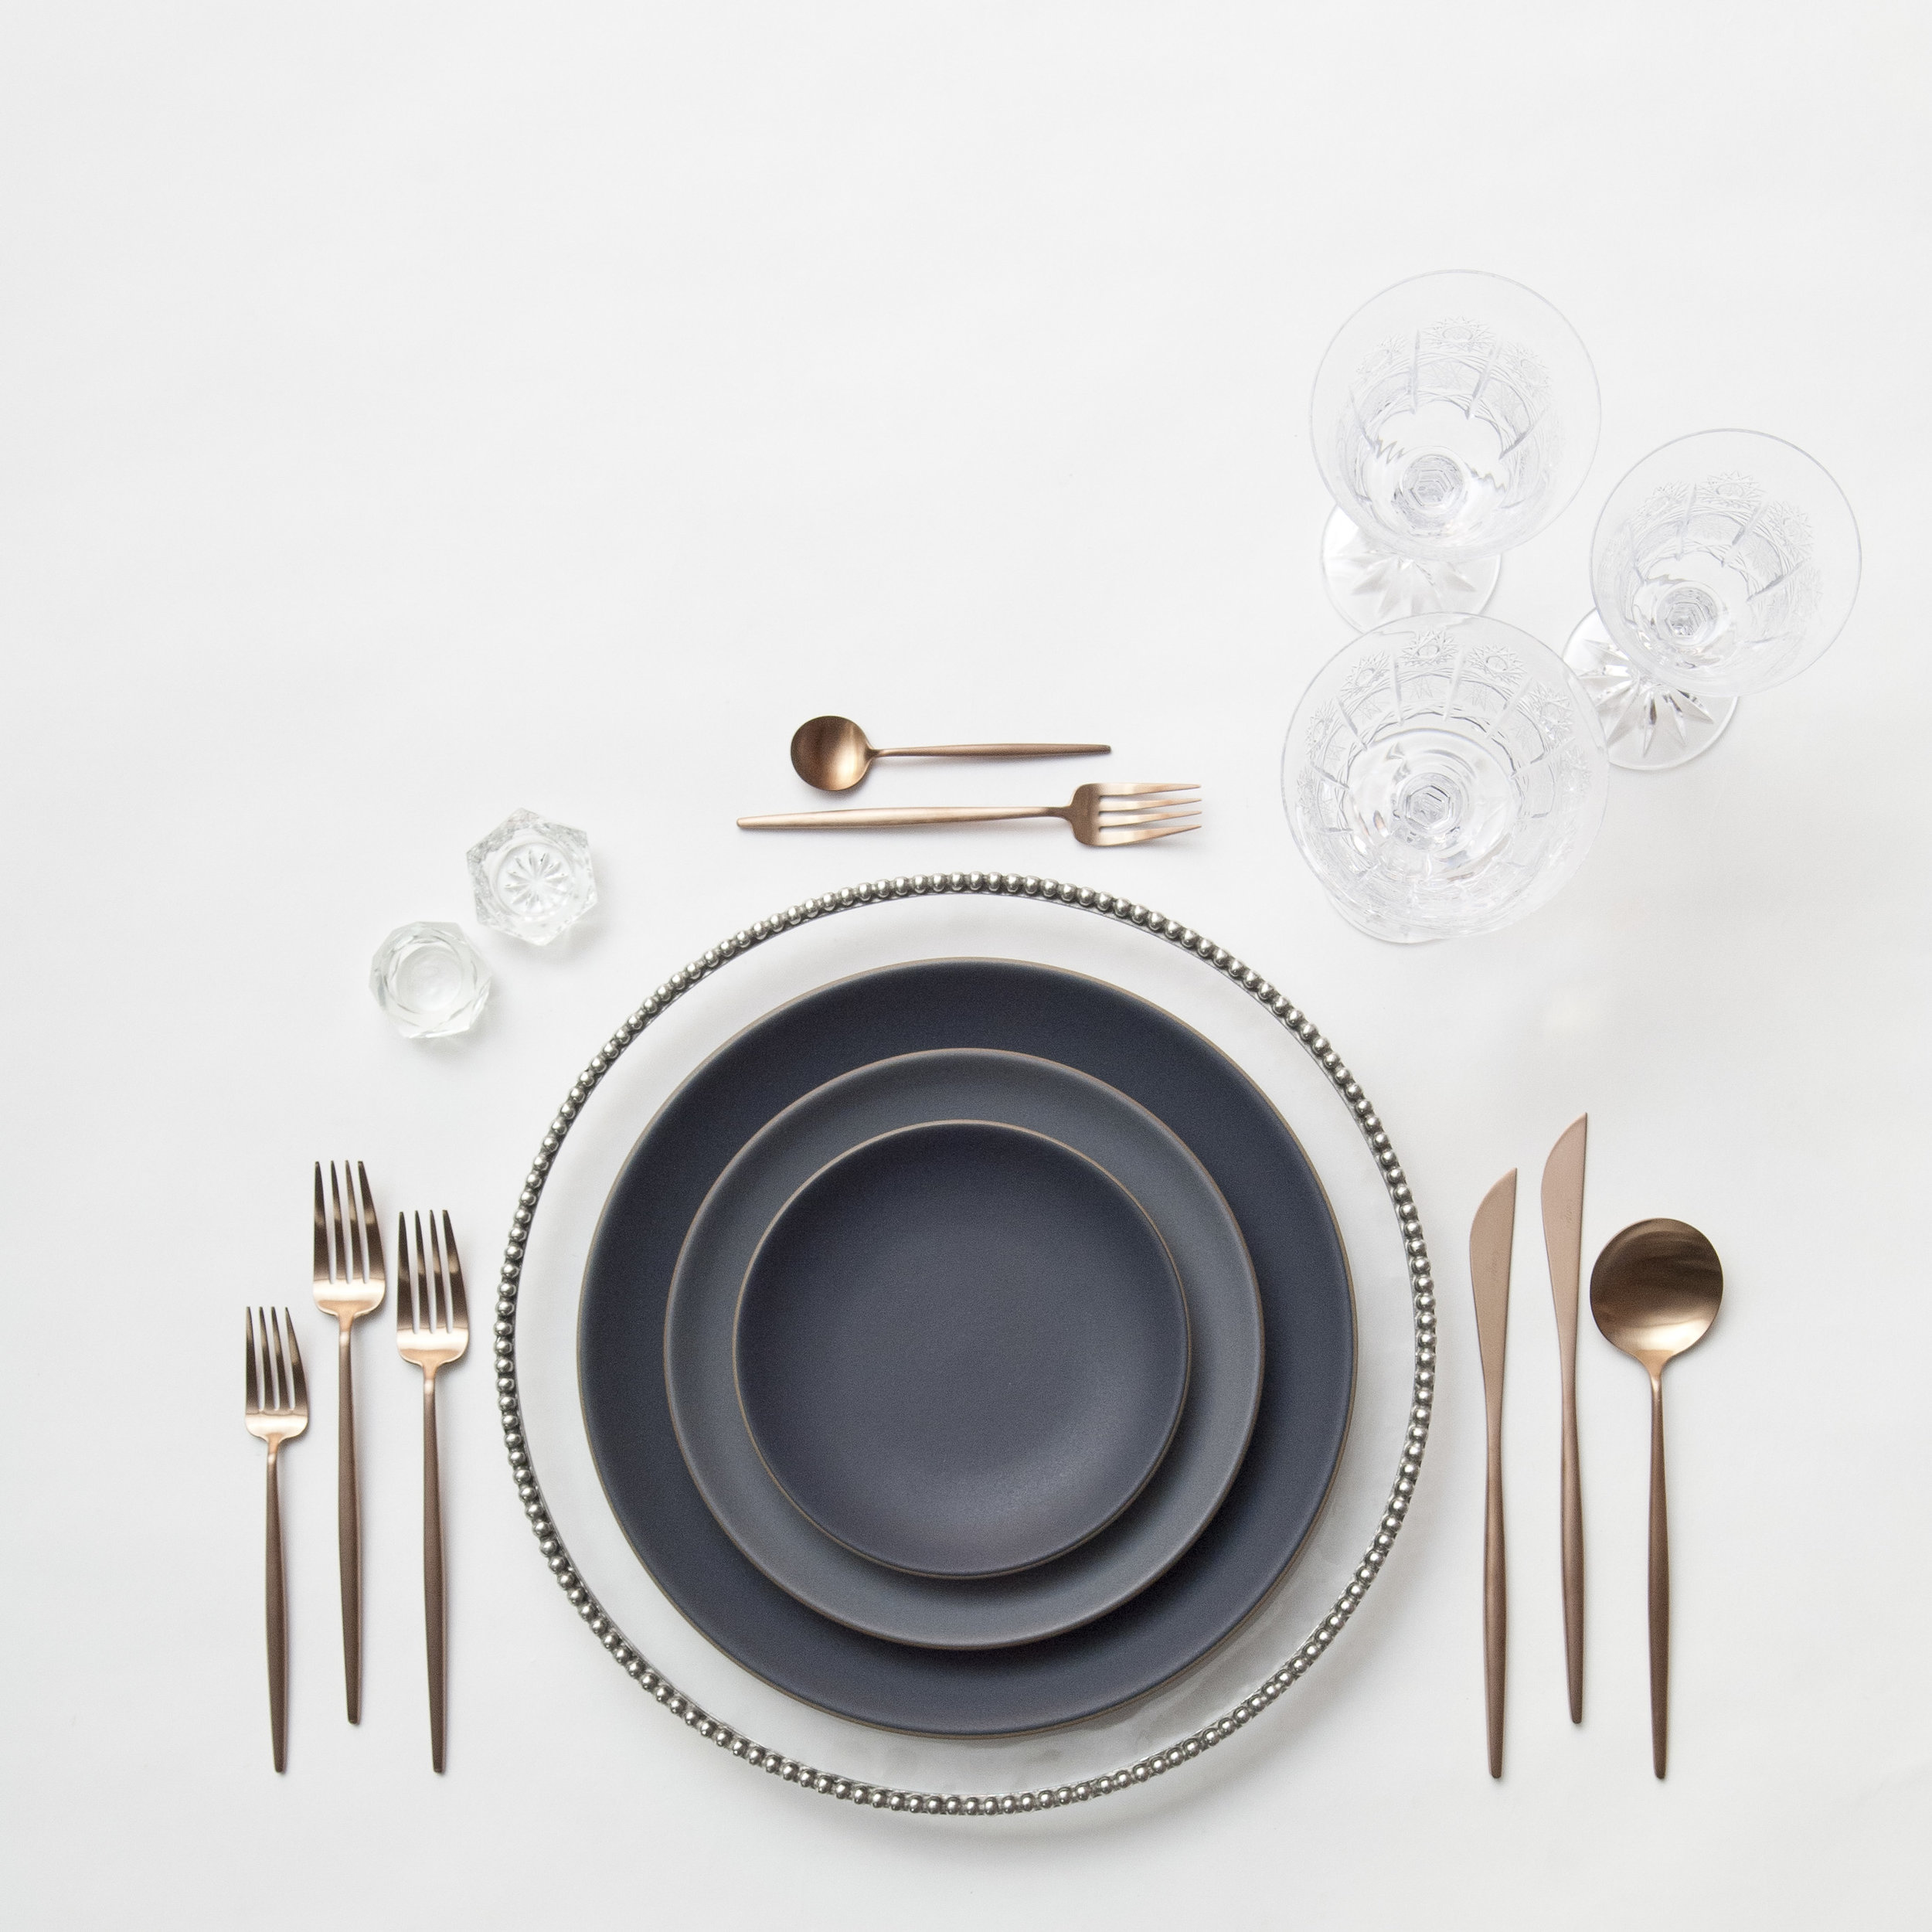 RENT: Pavé Glass Chargers in Pewter + Heath Ceramics in Indigo/Slate + Moon Flatware in Brushed Rose Gold + Czech Crystal Stemware + Antique Crystal Salt Cellars  SHOP: Moon Flatware in Brushed Rose Gold